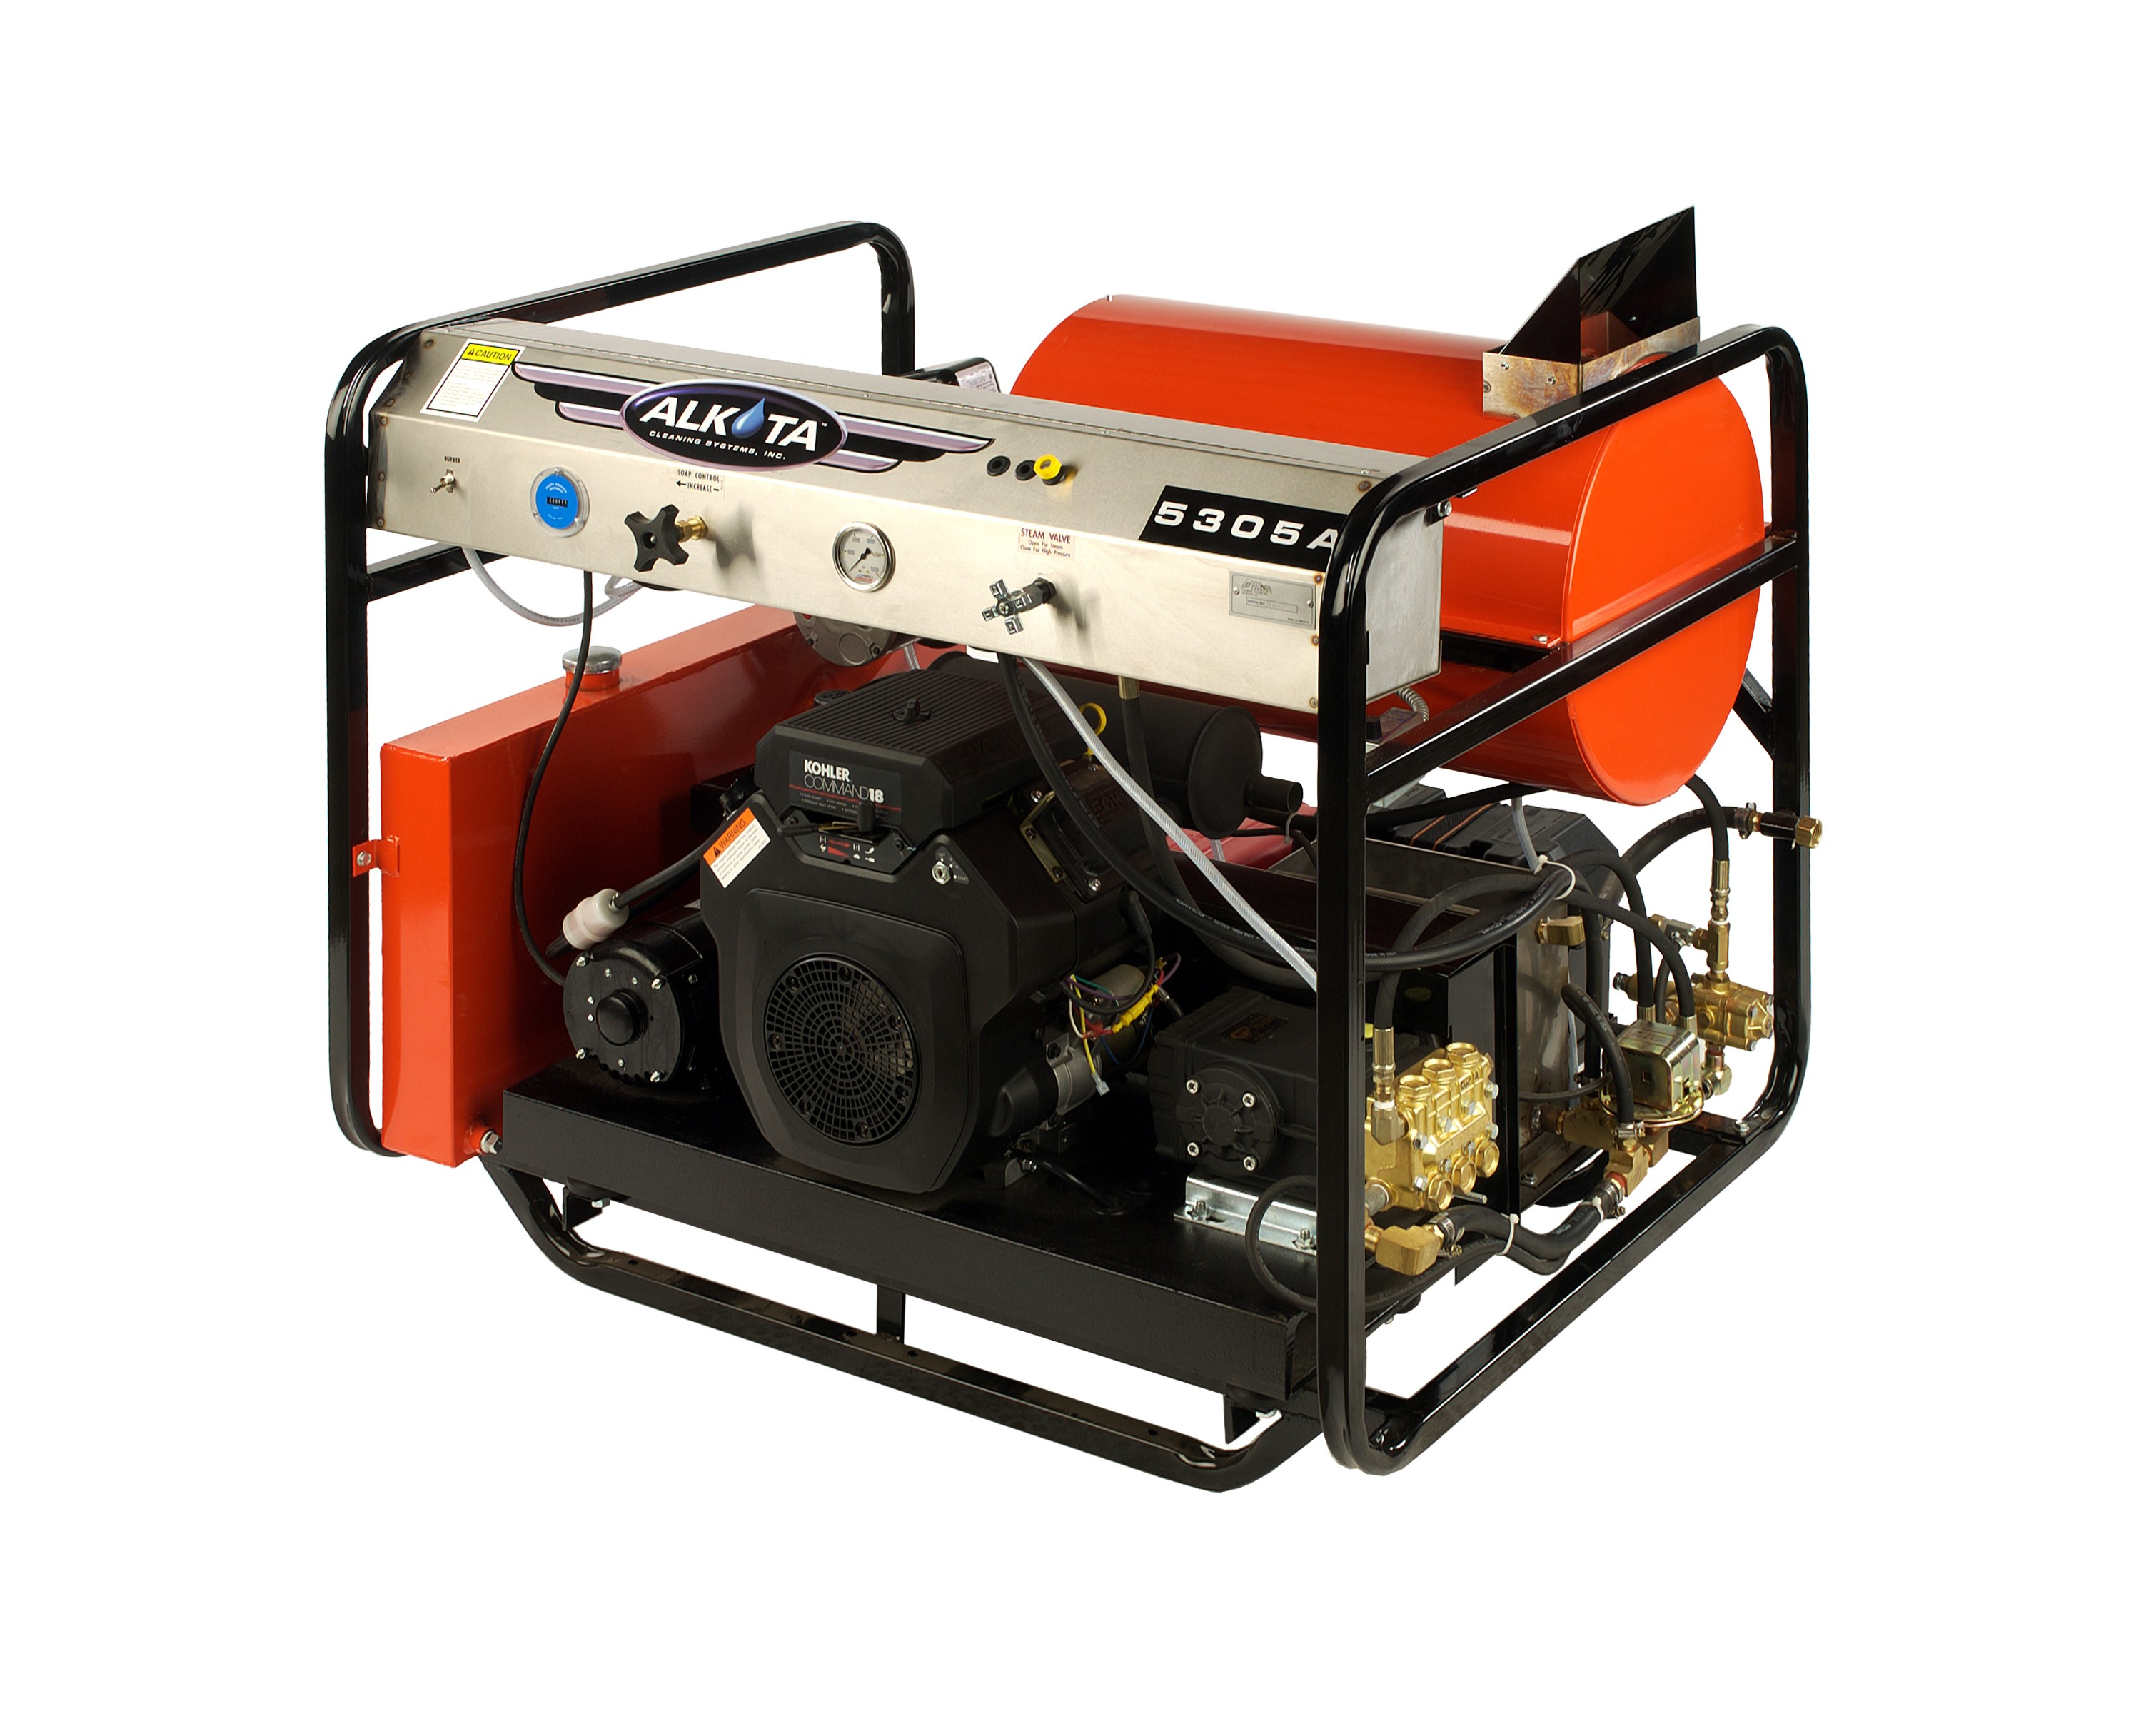 small resolution of pressure washer hot water gas engine 5305a alkota alkota cleaning alkota wiring diagram